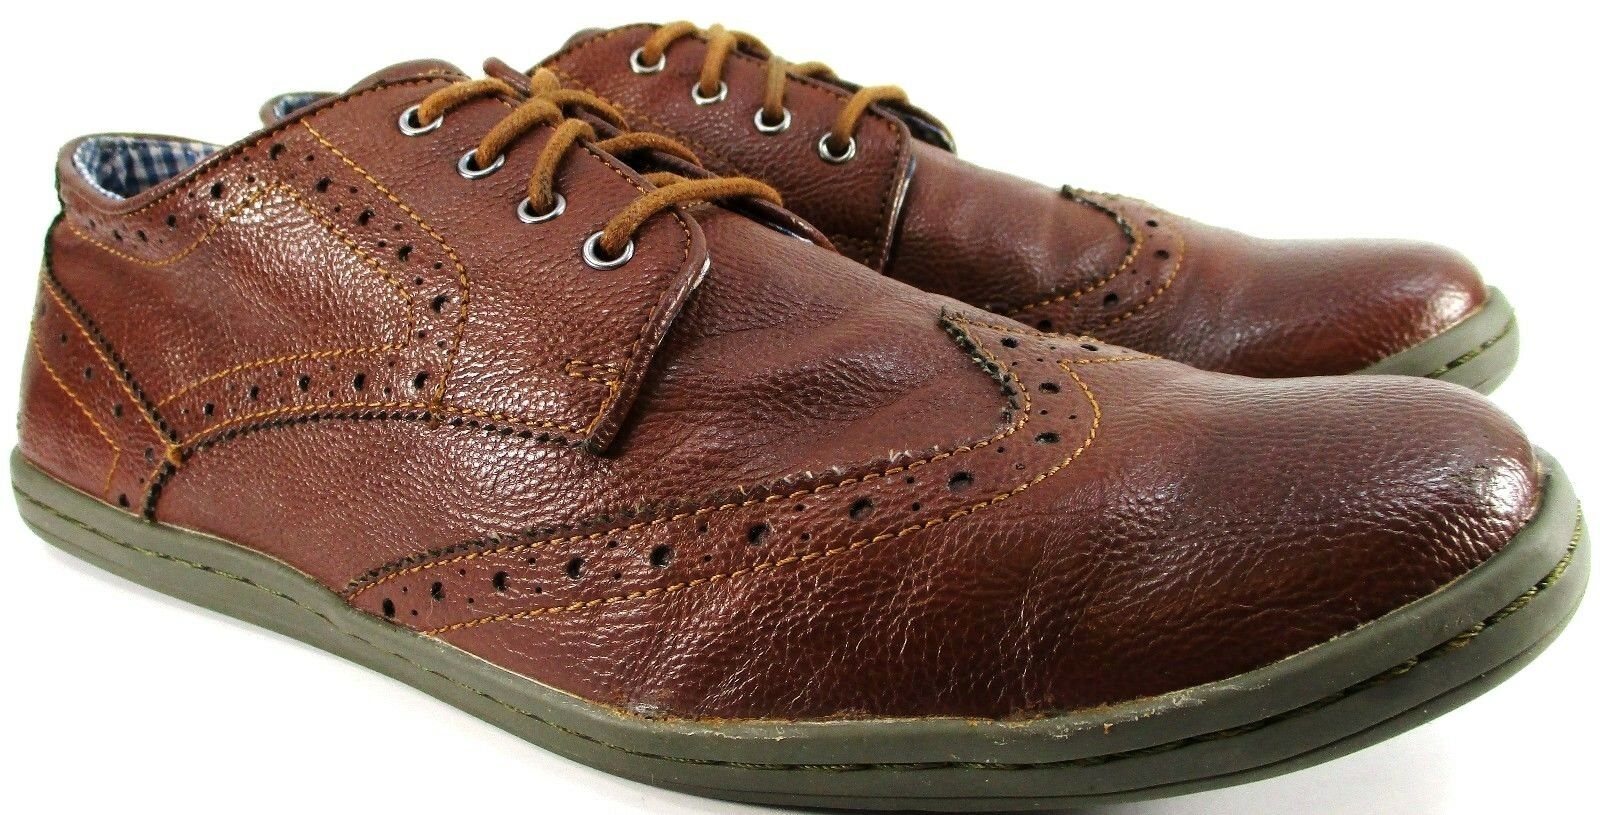 Ben Euro Sherman Men Wing Tip Schuhes Größe 11 Euro Ben 44 Braun Checked Fabric Lined 36bb68